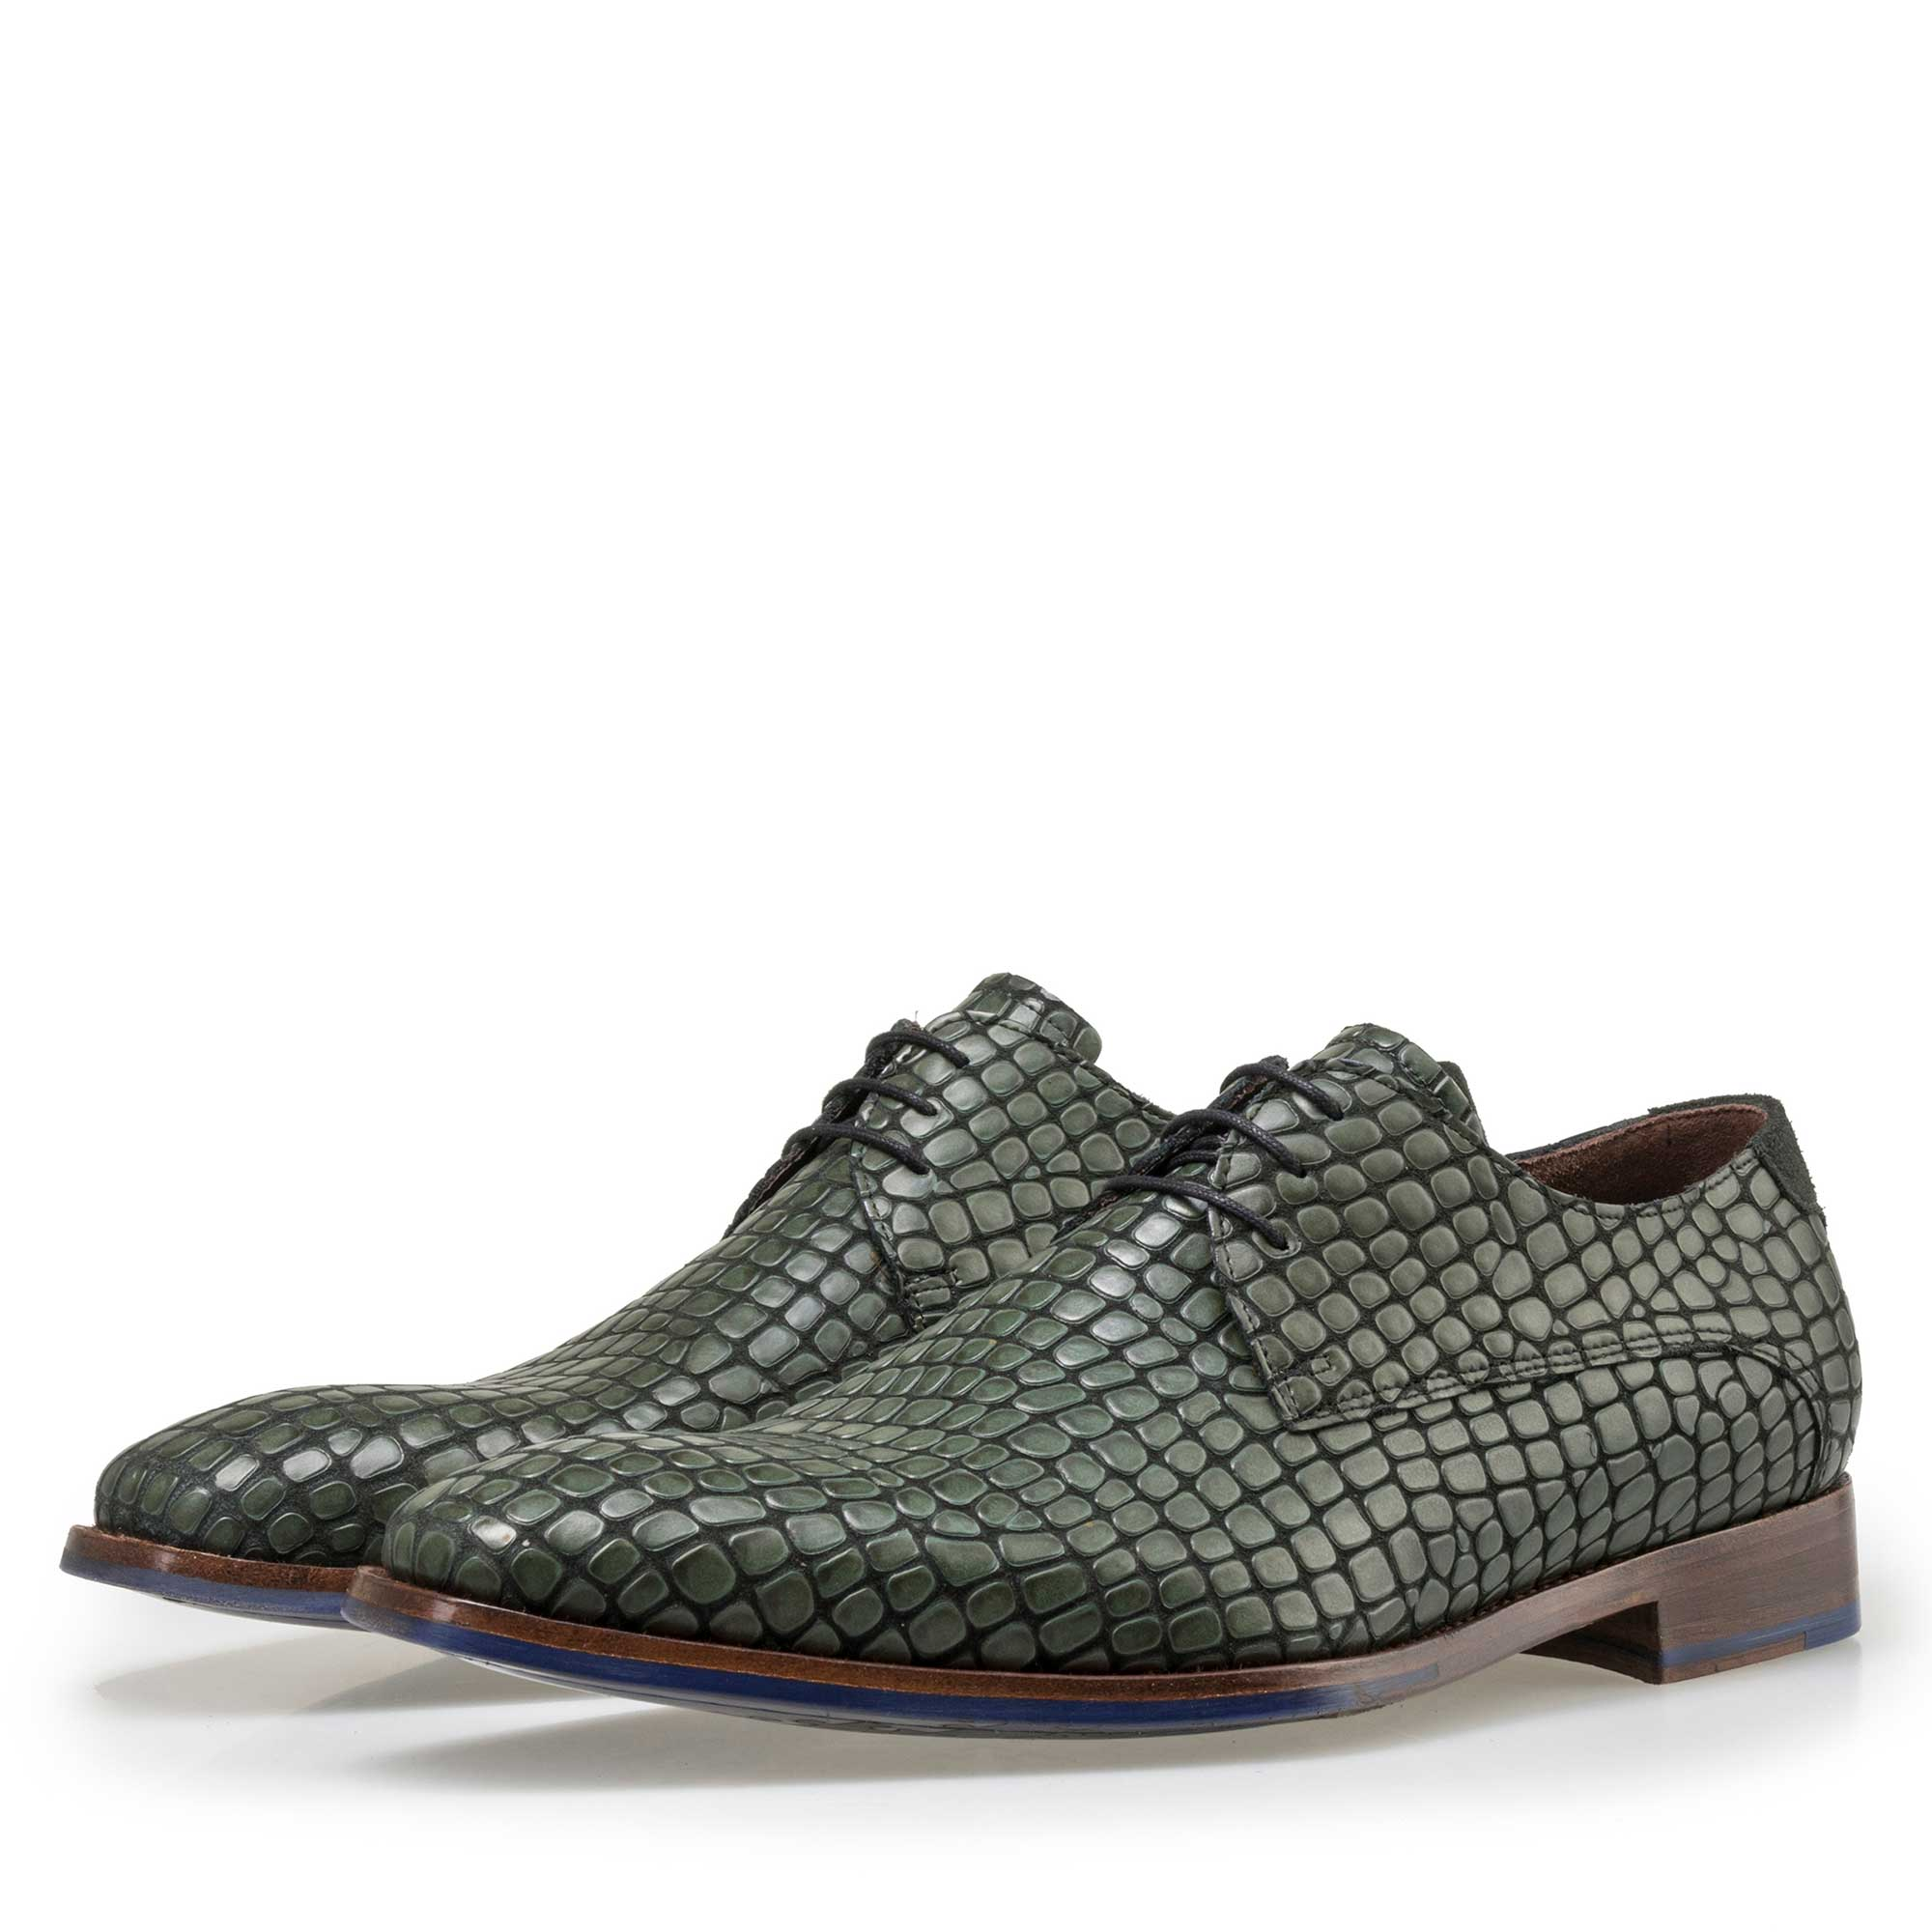 18043/01 - Floris van Bommel black calf's leather lace shoe finished with a green reptile pattern